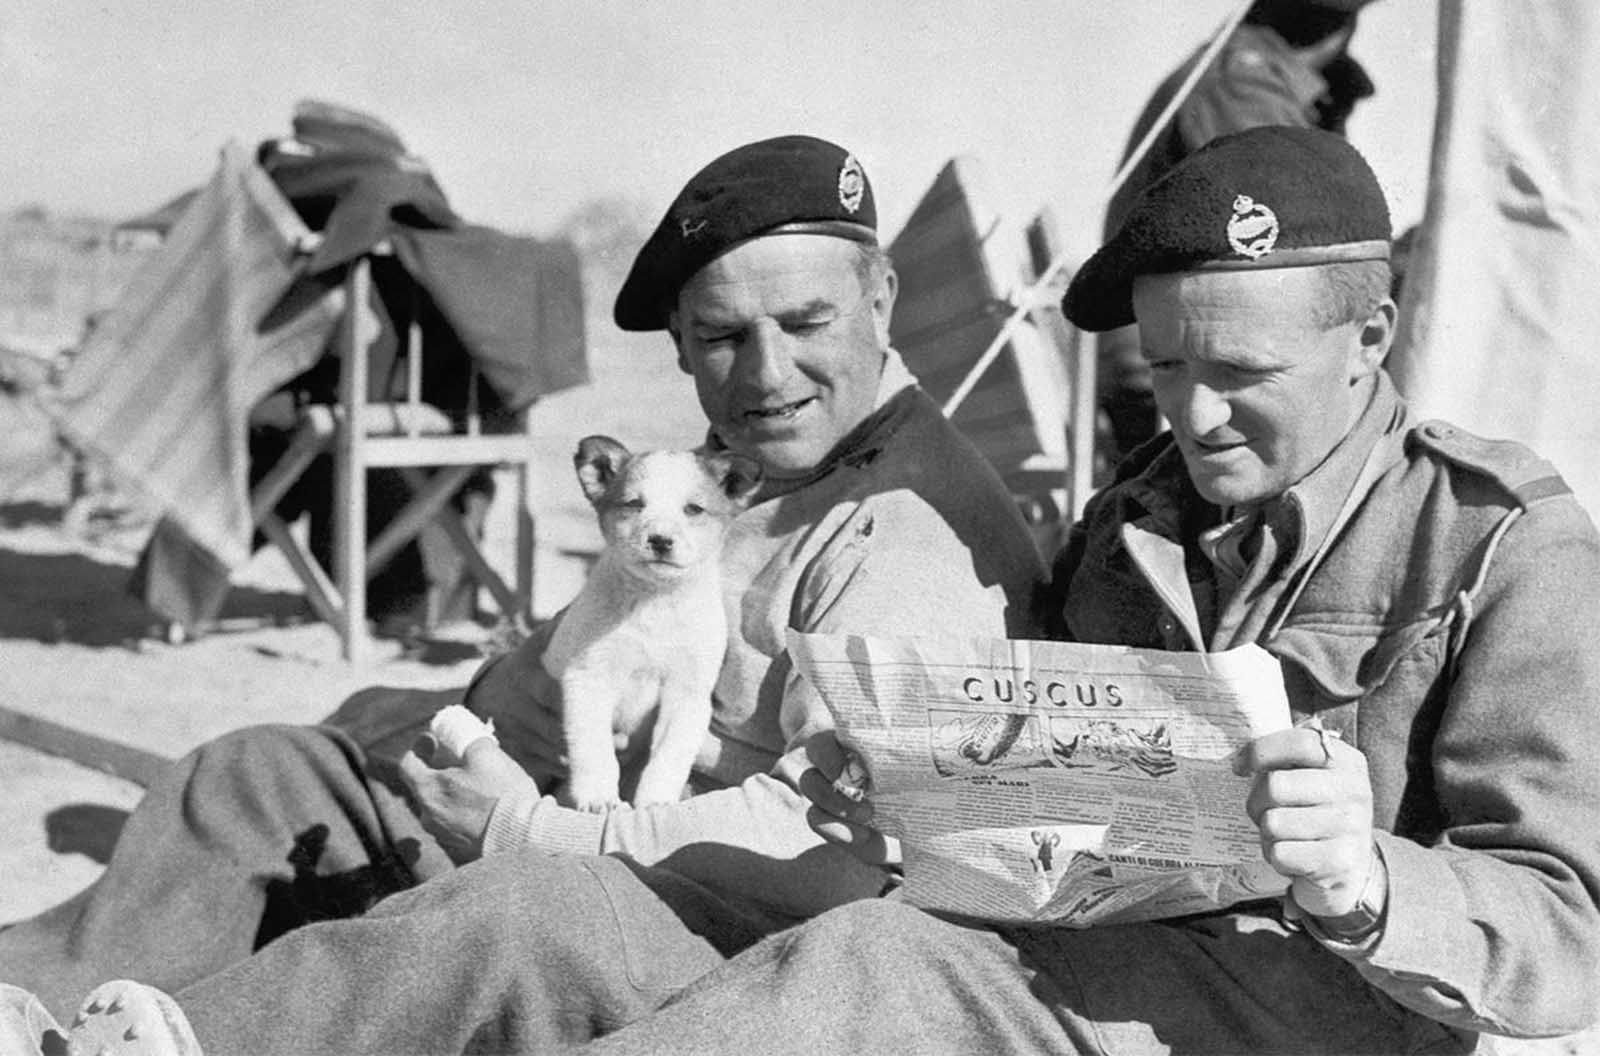 Two British tank officers, somewhere in the North African War Zone, on January 28, 1941, grin at war cartoons in an Italian newspaper. One holds a Mascot - a puppy found during the capture of Sidi Barrani, one of the first Italian bases to fall in the African War.